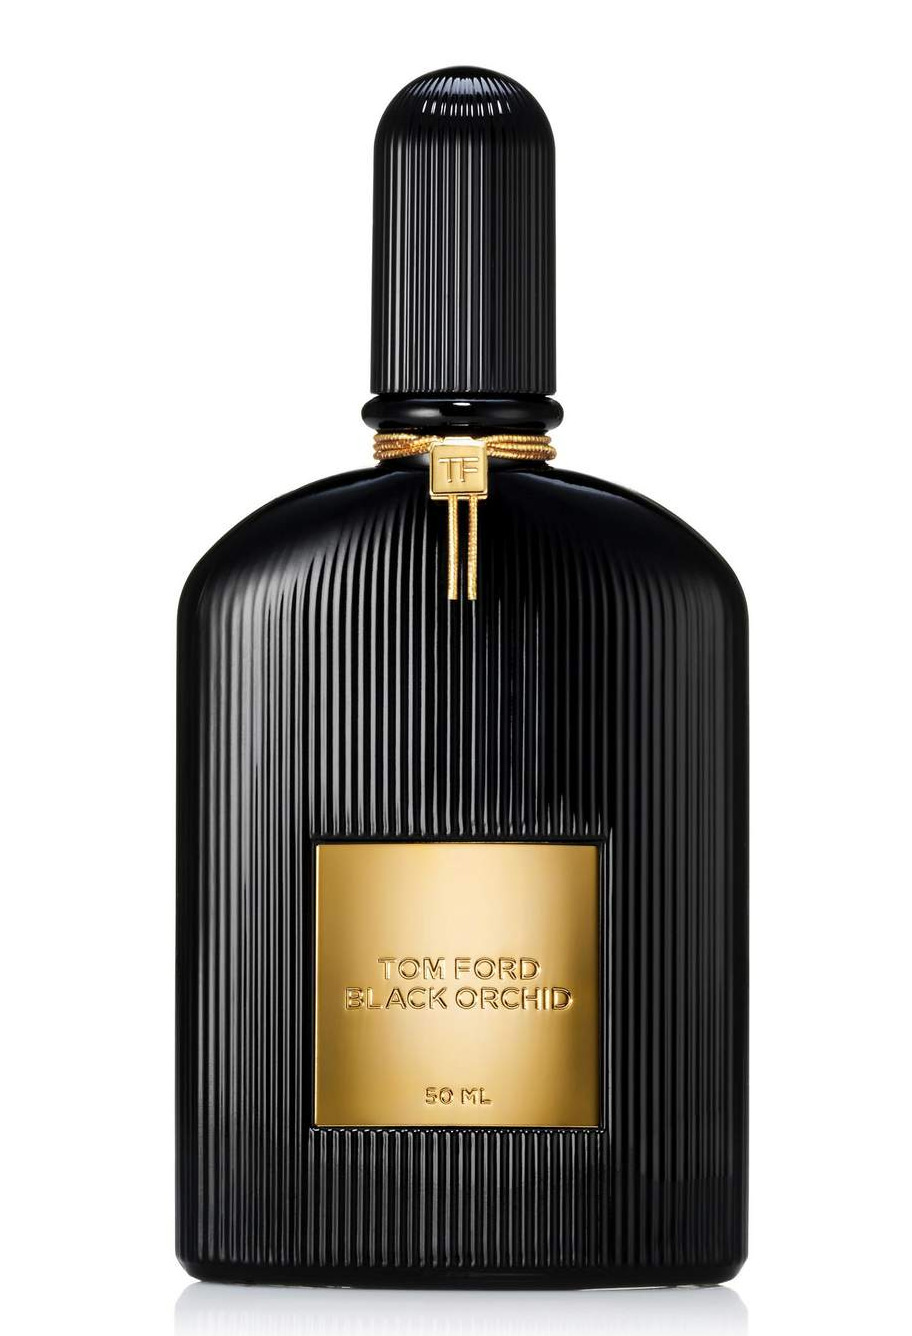 black orchid tom ford perfume a fragrance for women 2006. Cars Review. Best American Auto & Cars Review